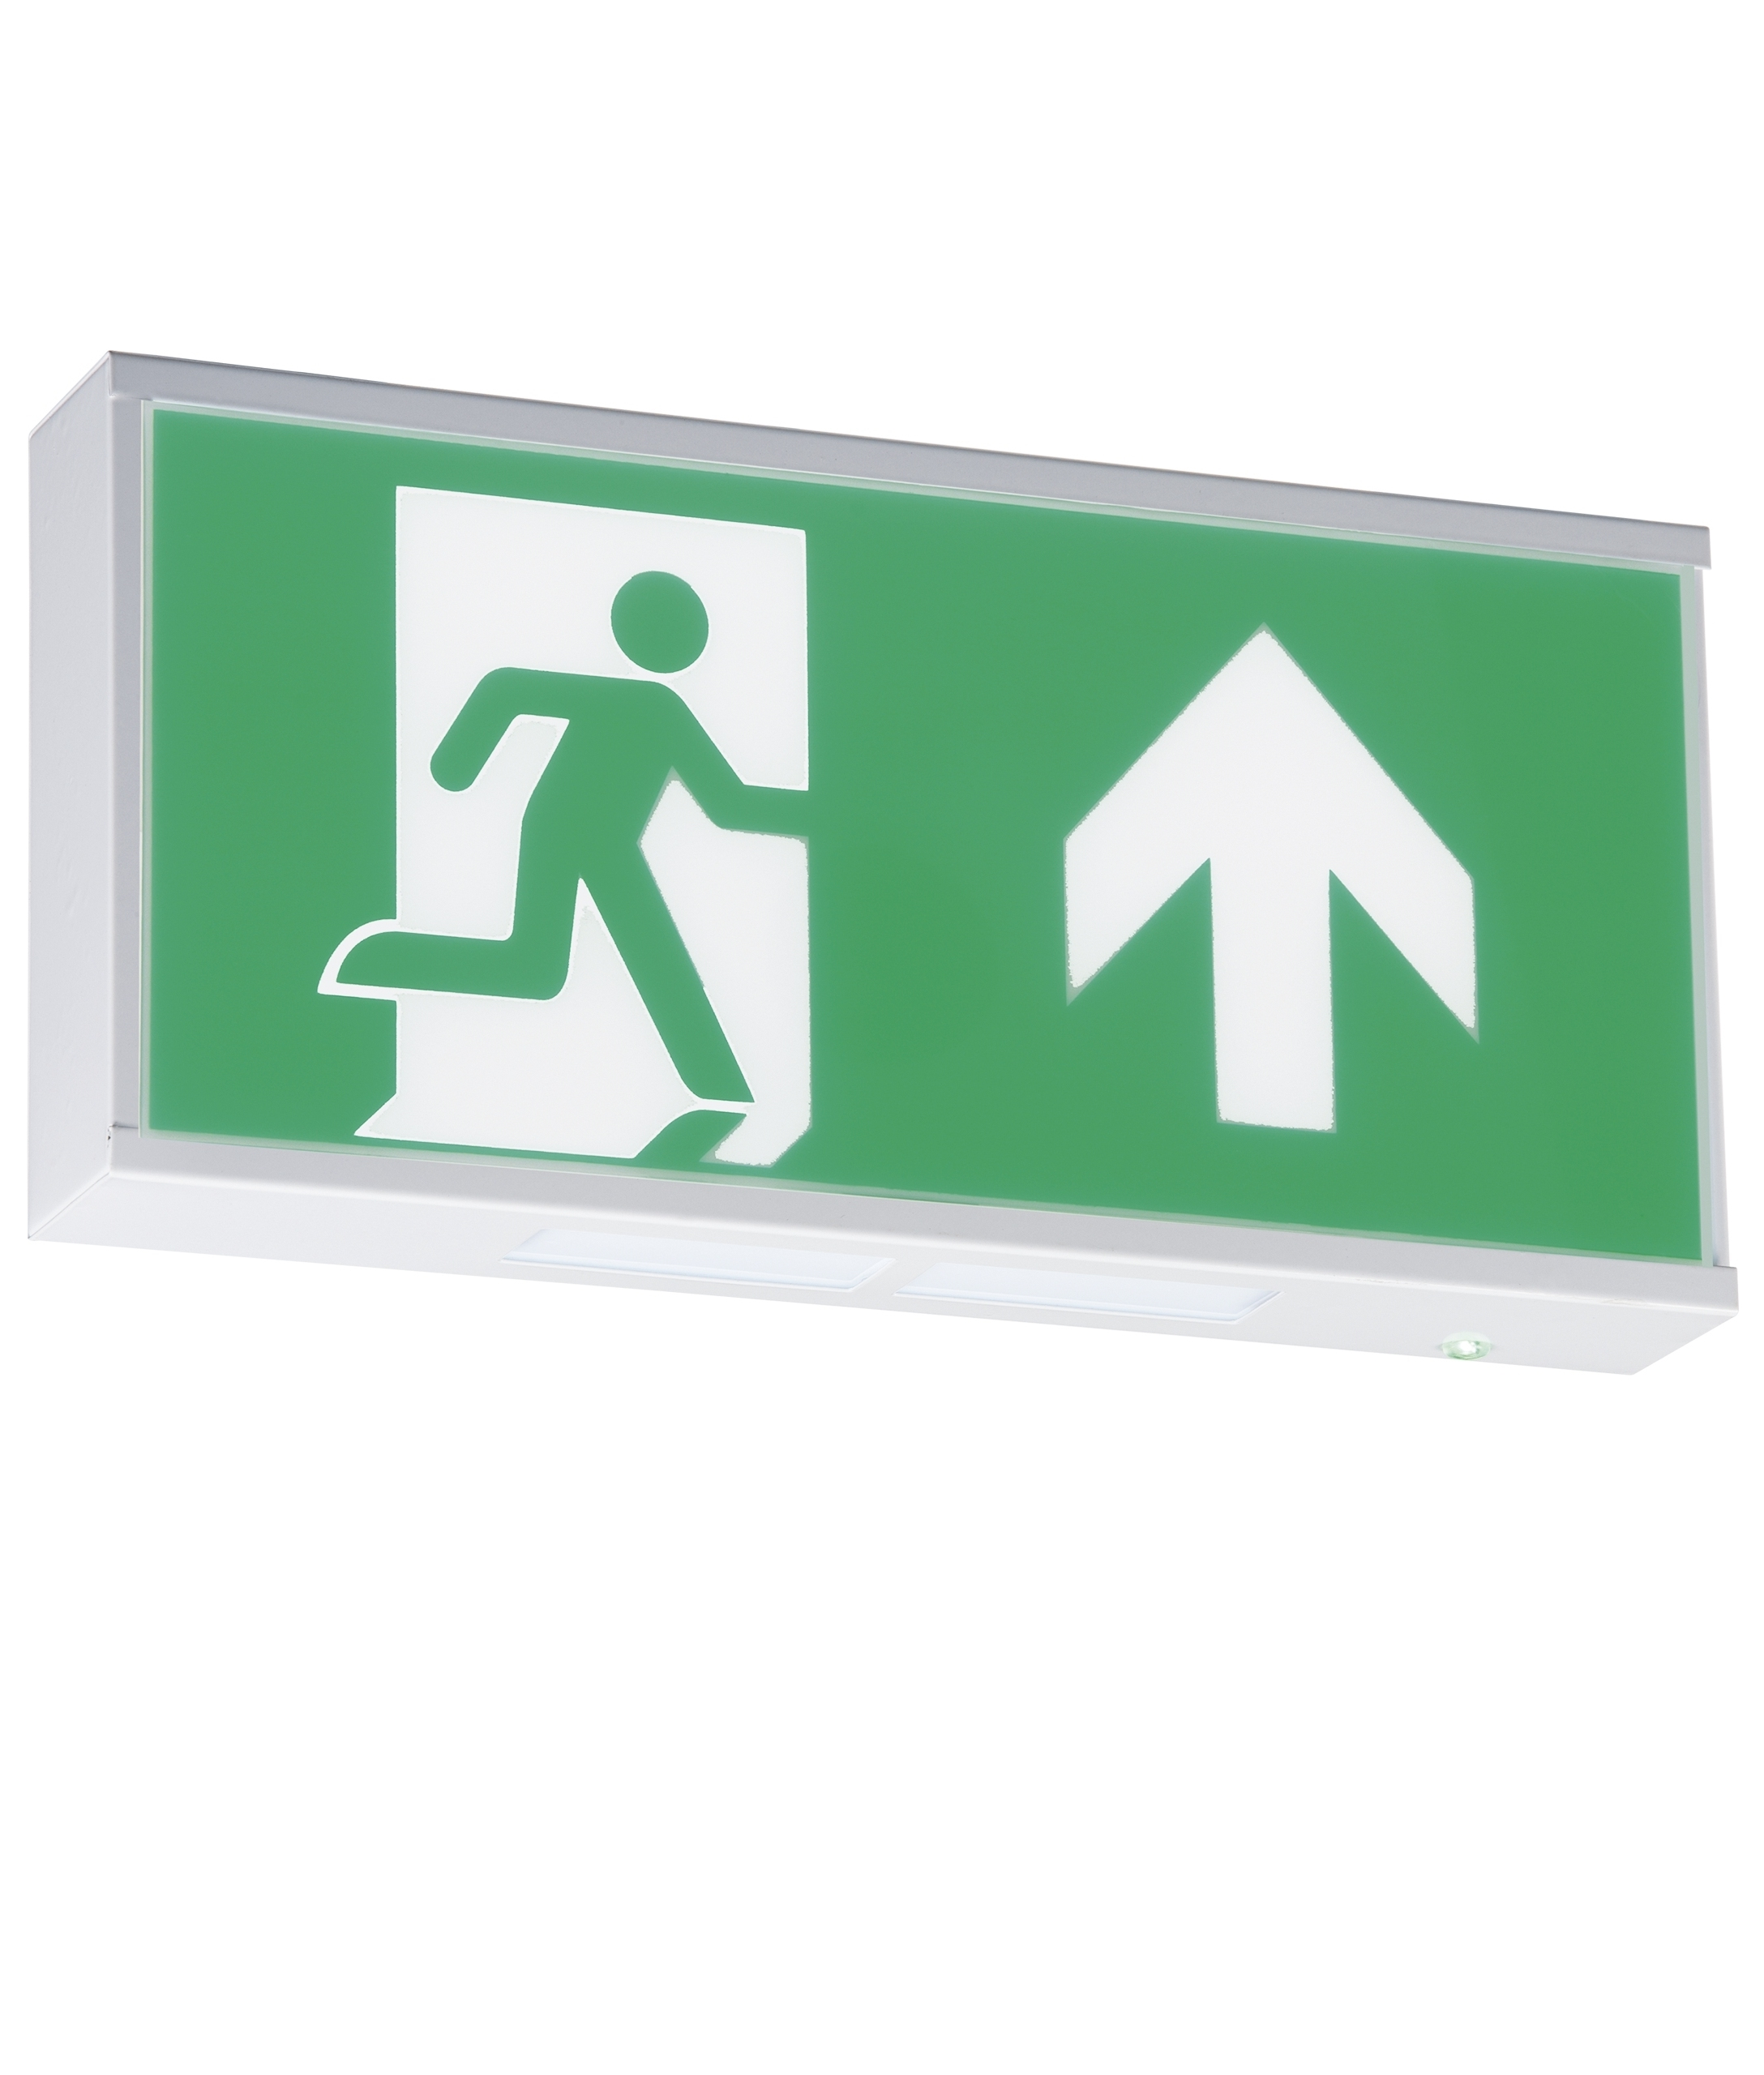 Wall Mounted Exit Lights : Illuminated Emergency Exit Sign www.imgkid.com - The Image Kid Has It!